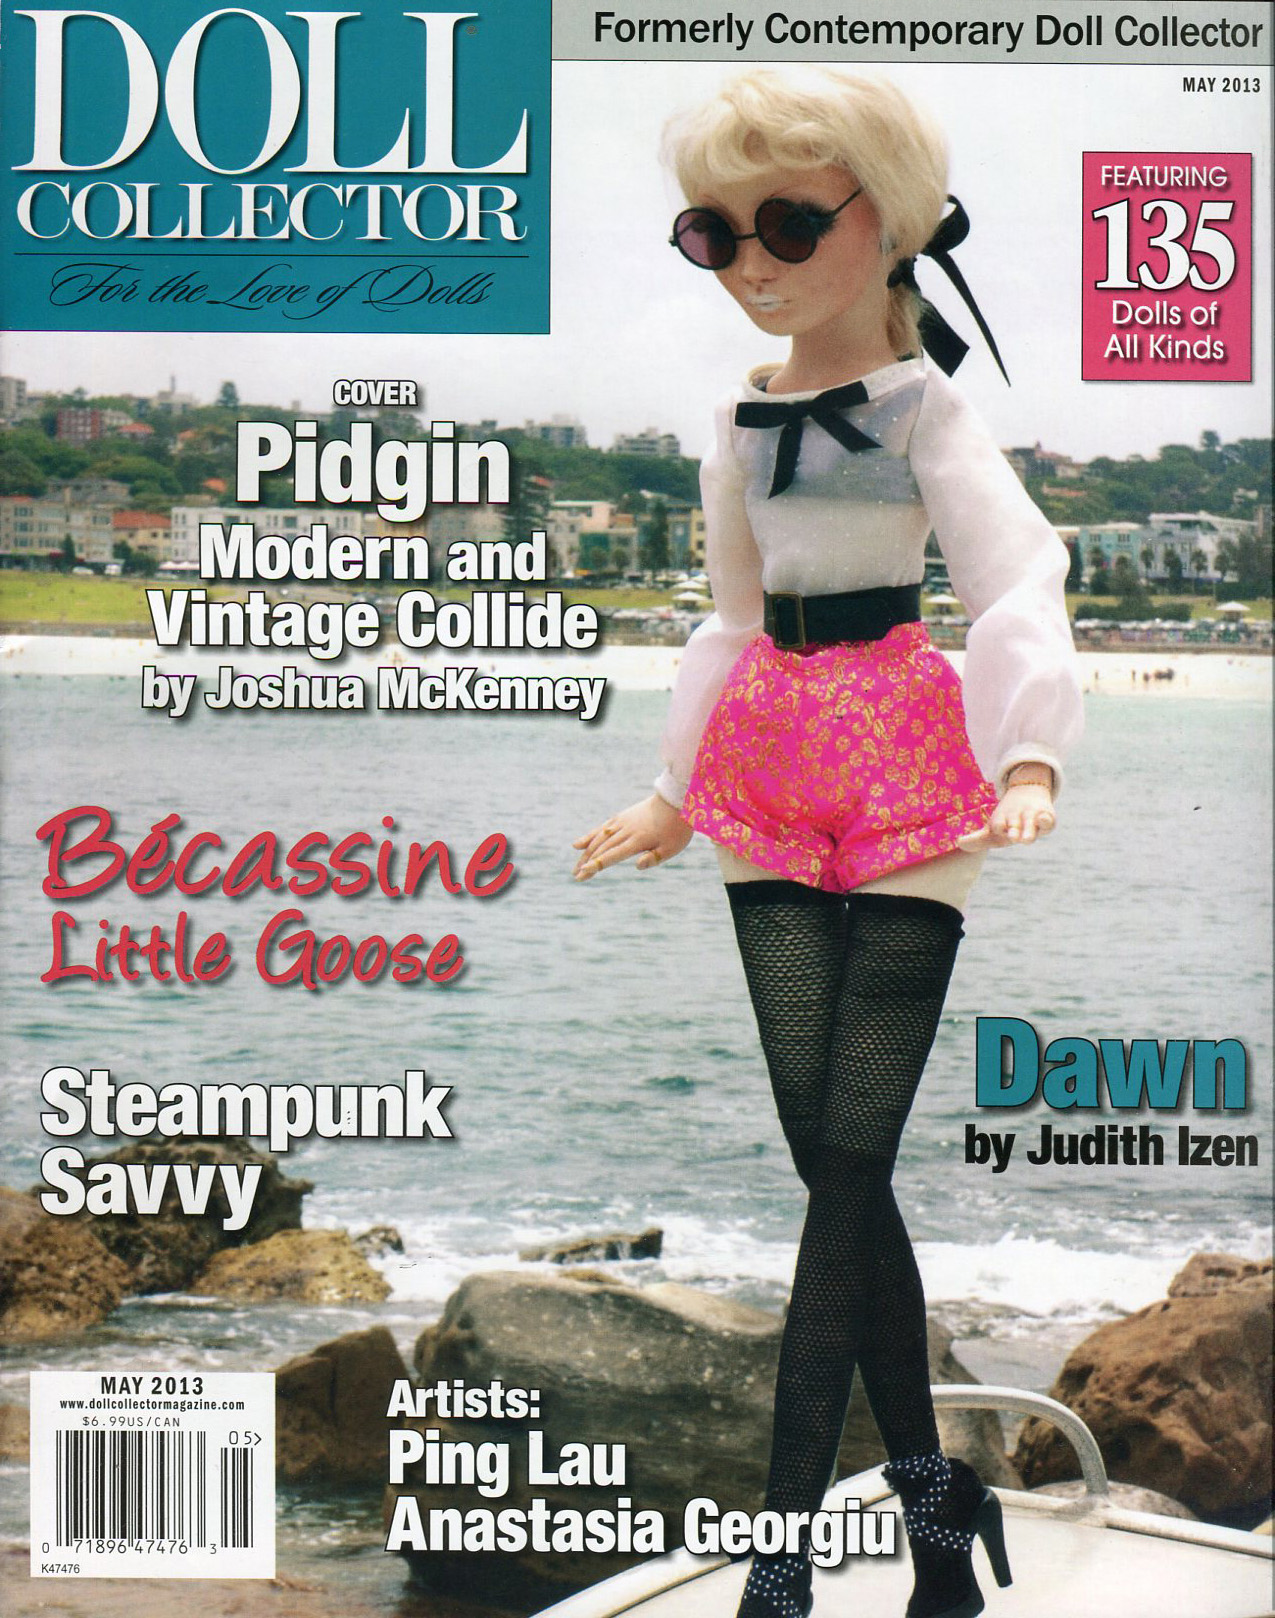 Doll Collector: May 2013